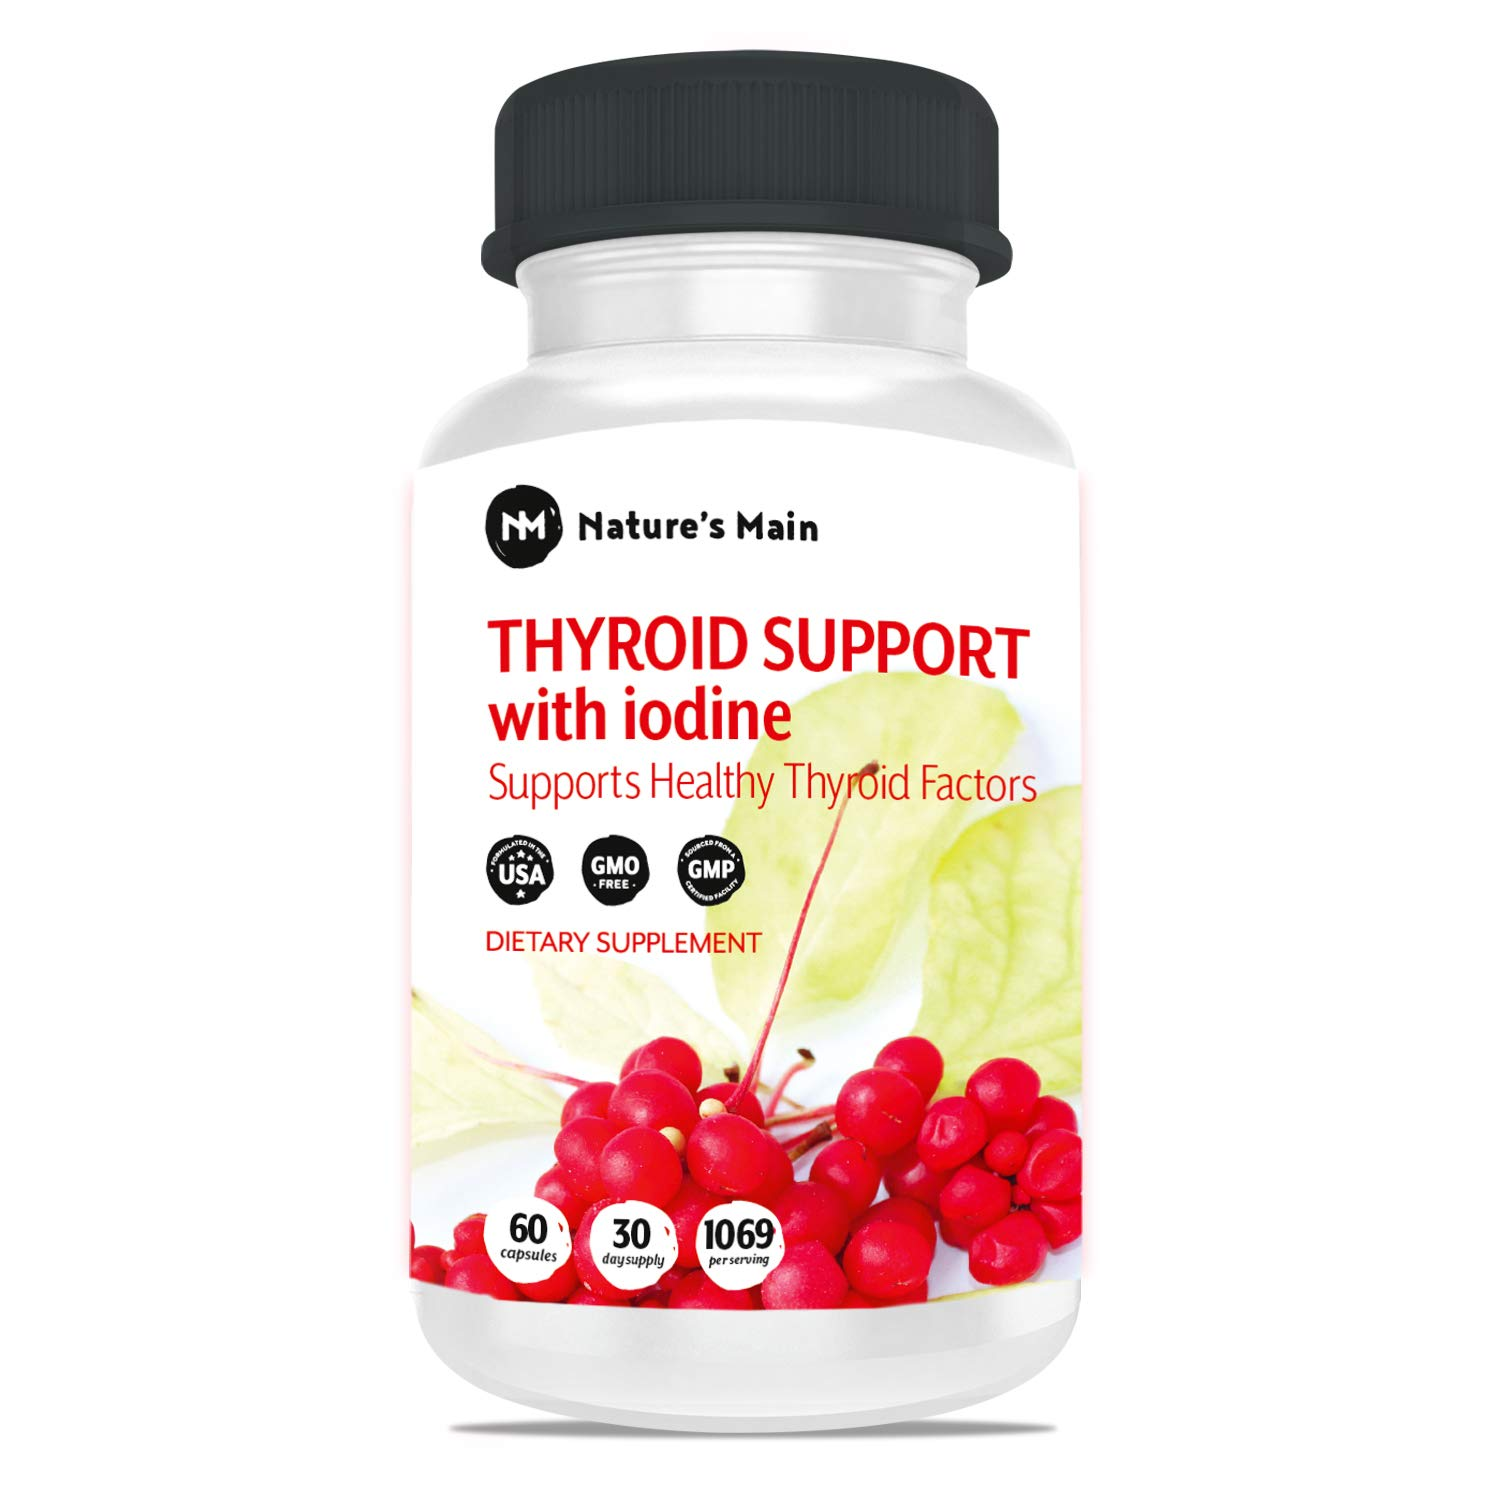 Thyroid Support Energy Pills ǀ Iodine Supplement & Metabolism Booster for Weight Loss, Brain Fog & Nature Throid with Adaptogens Ashwagandha, L-Thyrosine & Selenium Supplements ǀ 60 Capsules by NM Nature's Main